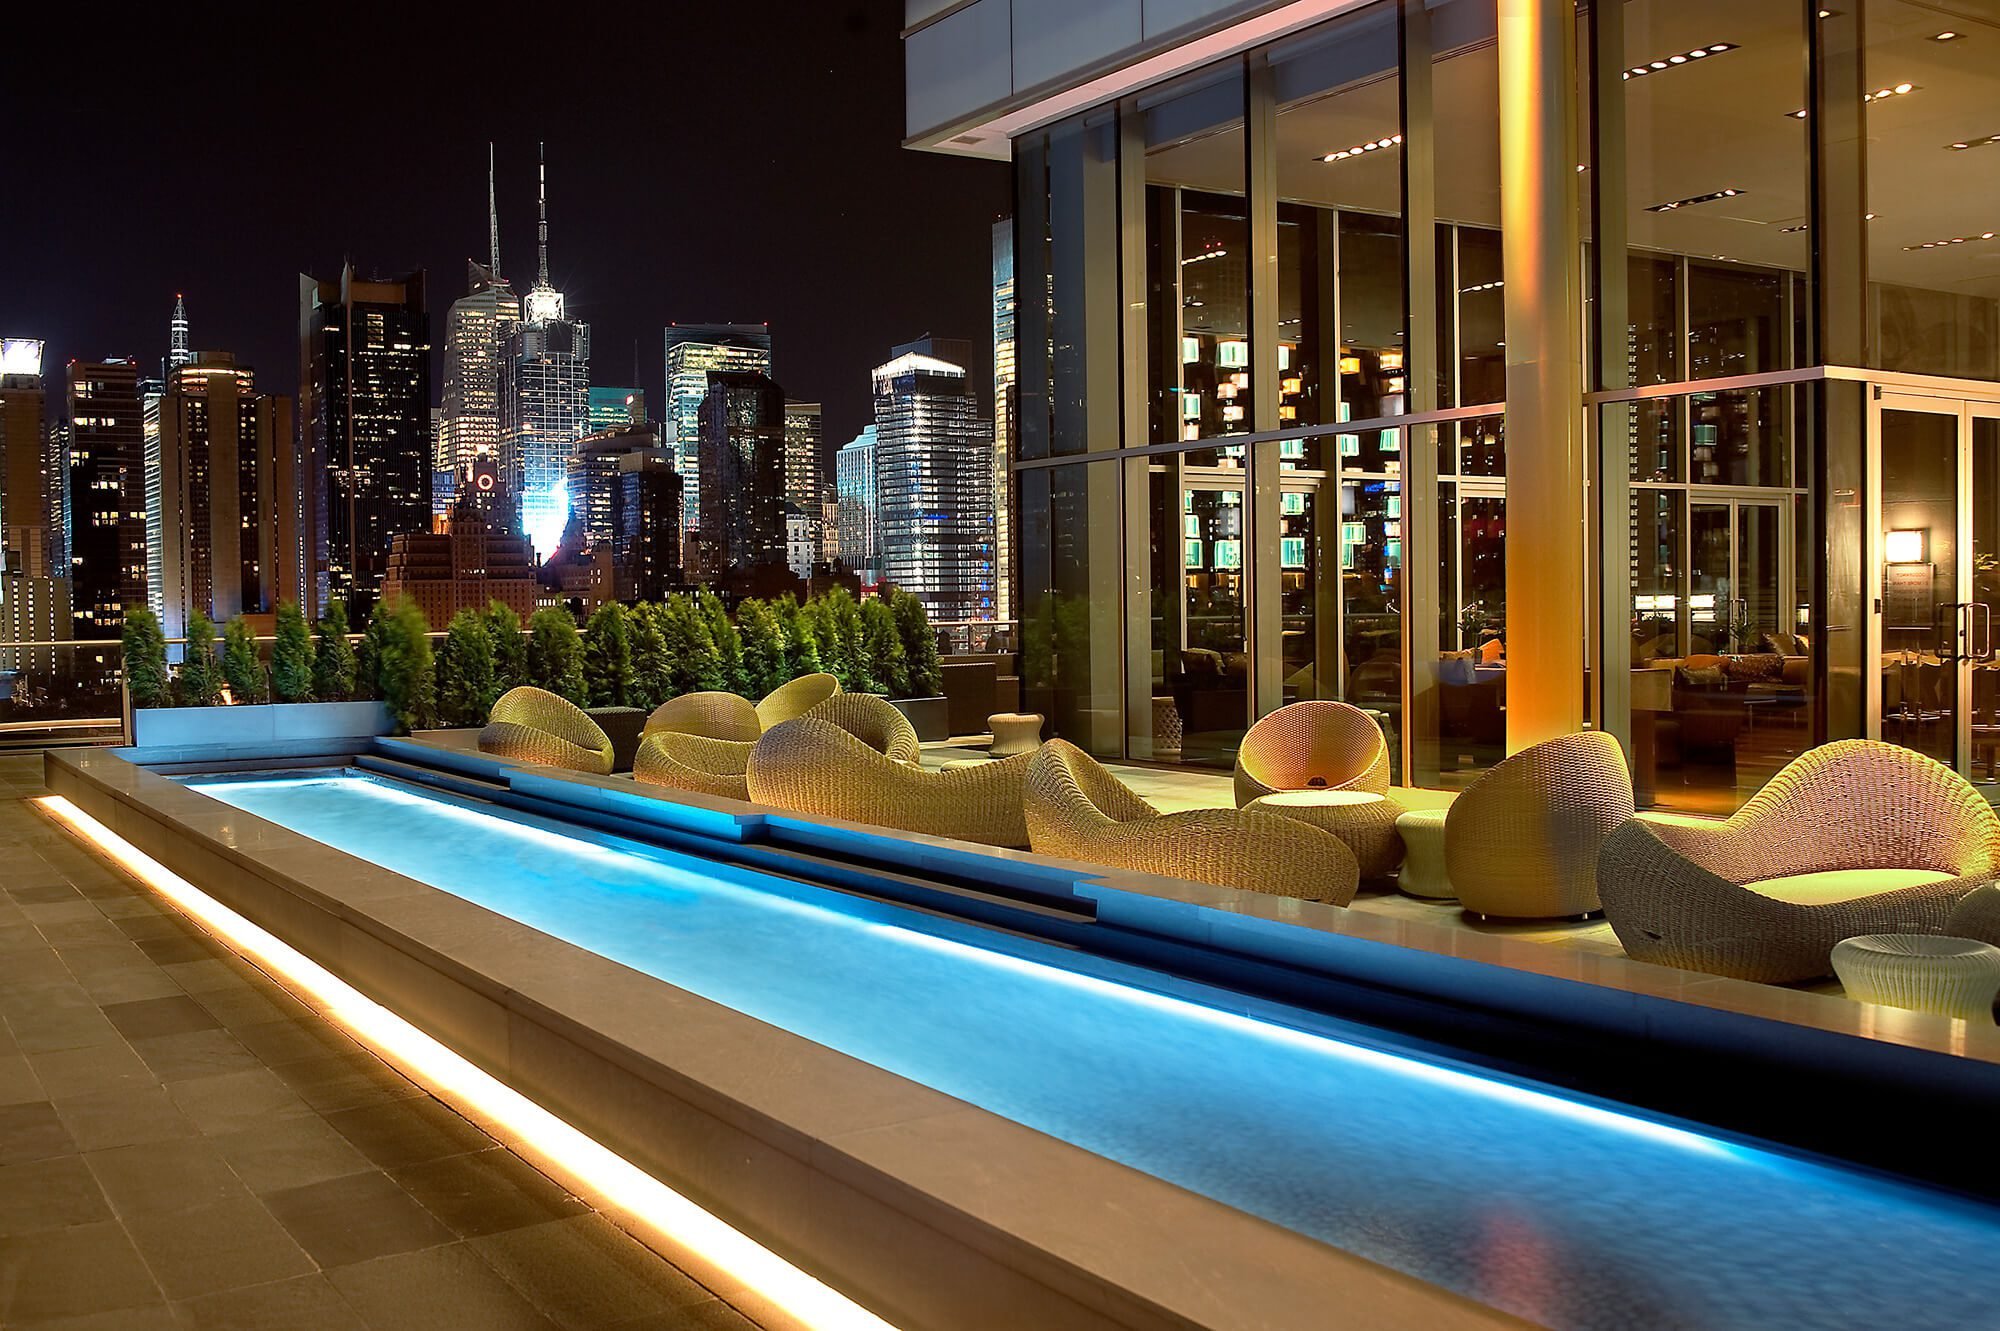 Press Lounge Is One of NYC's Top 10 Rooftop Bars